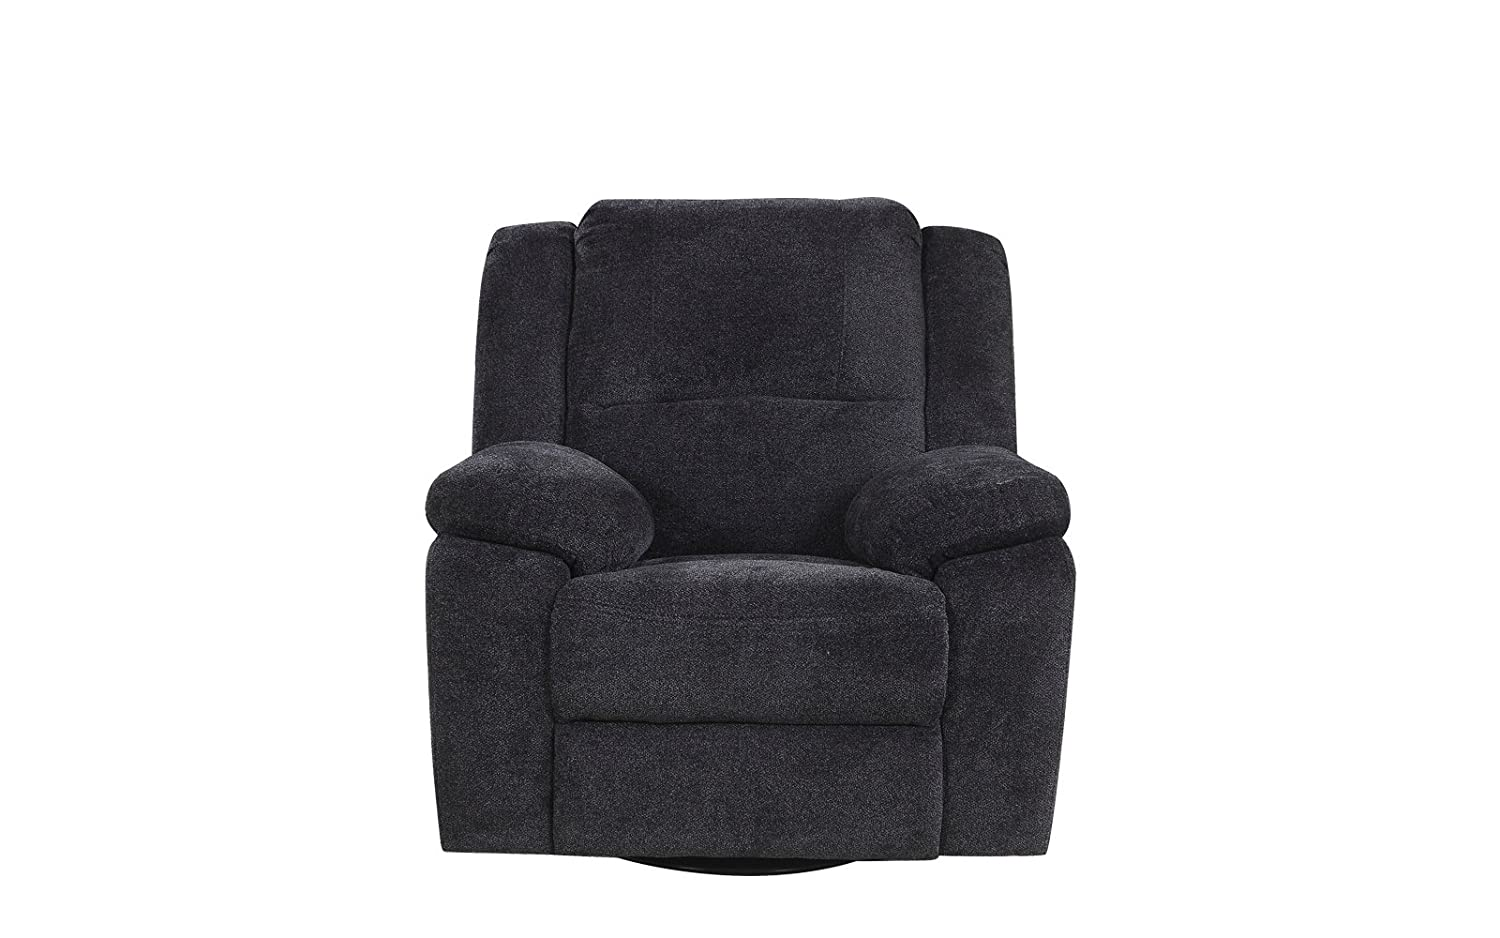 DIVANO ROMA FURNITURE Brush Microfiber Rocker and Swivel Recliner Living Room Chair (Dark Grey)